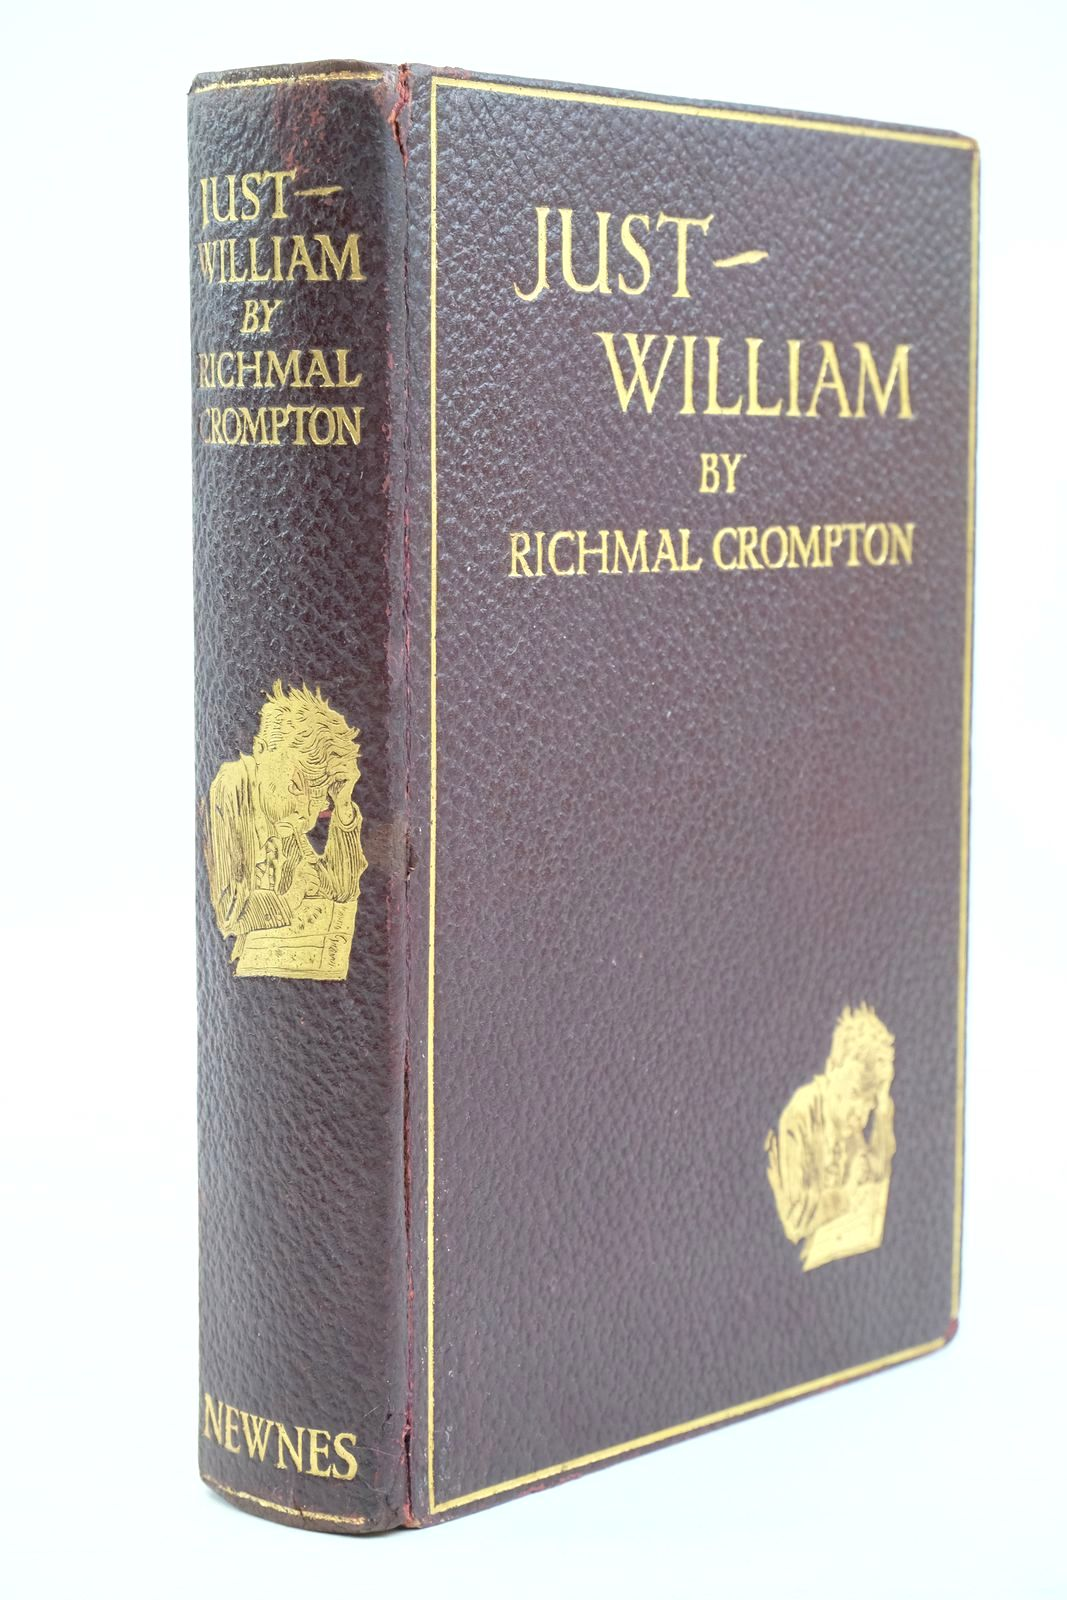 Photo of JUST WILLIAM written by Crompton, Richmal illustrated by Henry, Thomas published by George Newnes Limited (STOCK CODE: 1320872)  for sale by Stella & Rose's Books